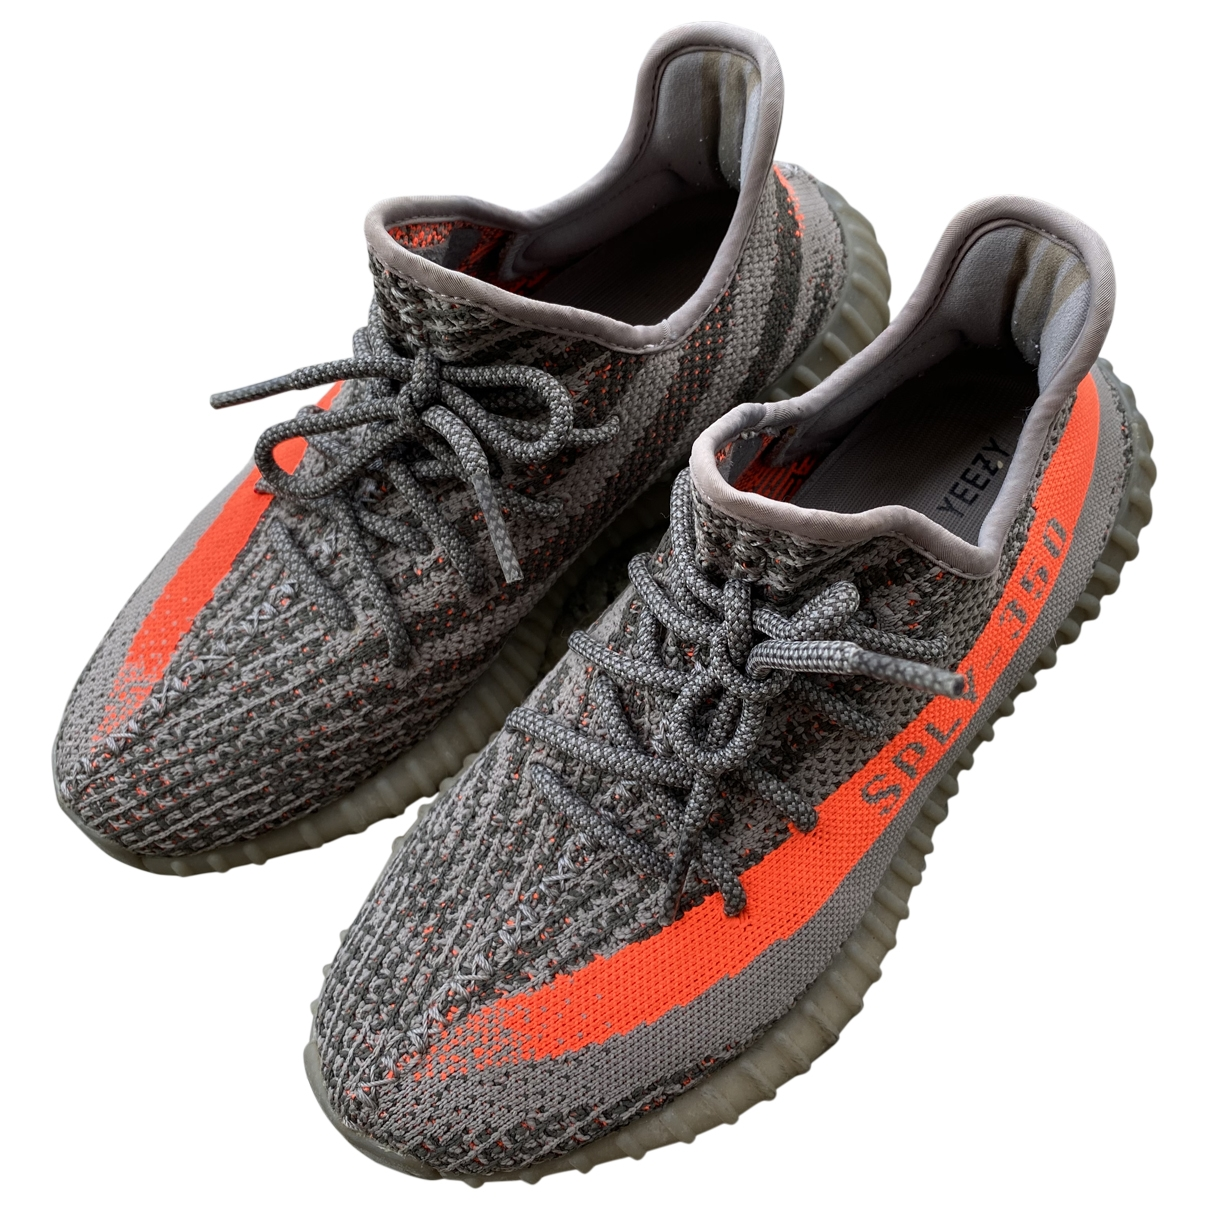 Yeezy X Adidas Boost 350 V2 Grey Cloth Boots for Men 8 US